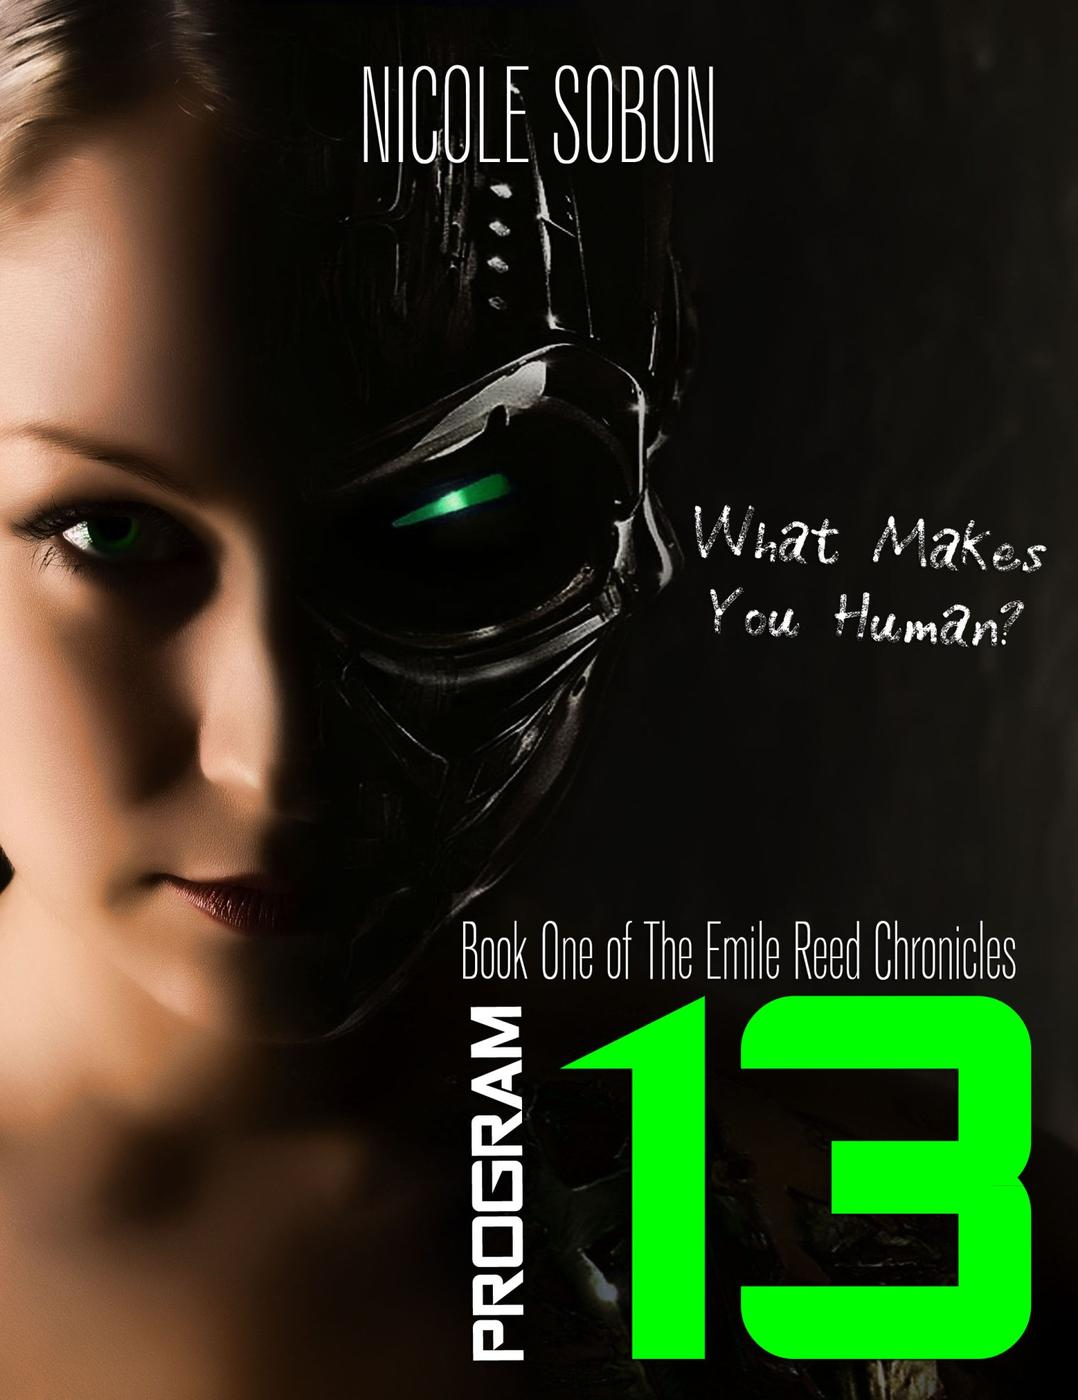 Program 13 (The Emile Reed Chronicles, 1)